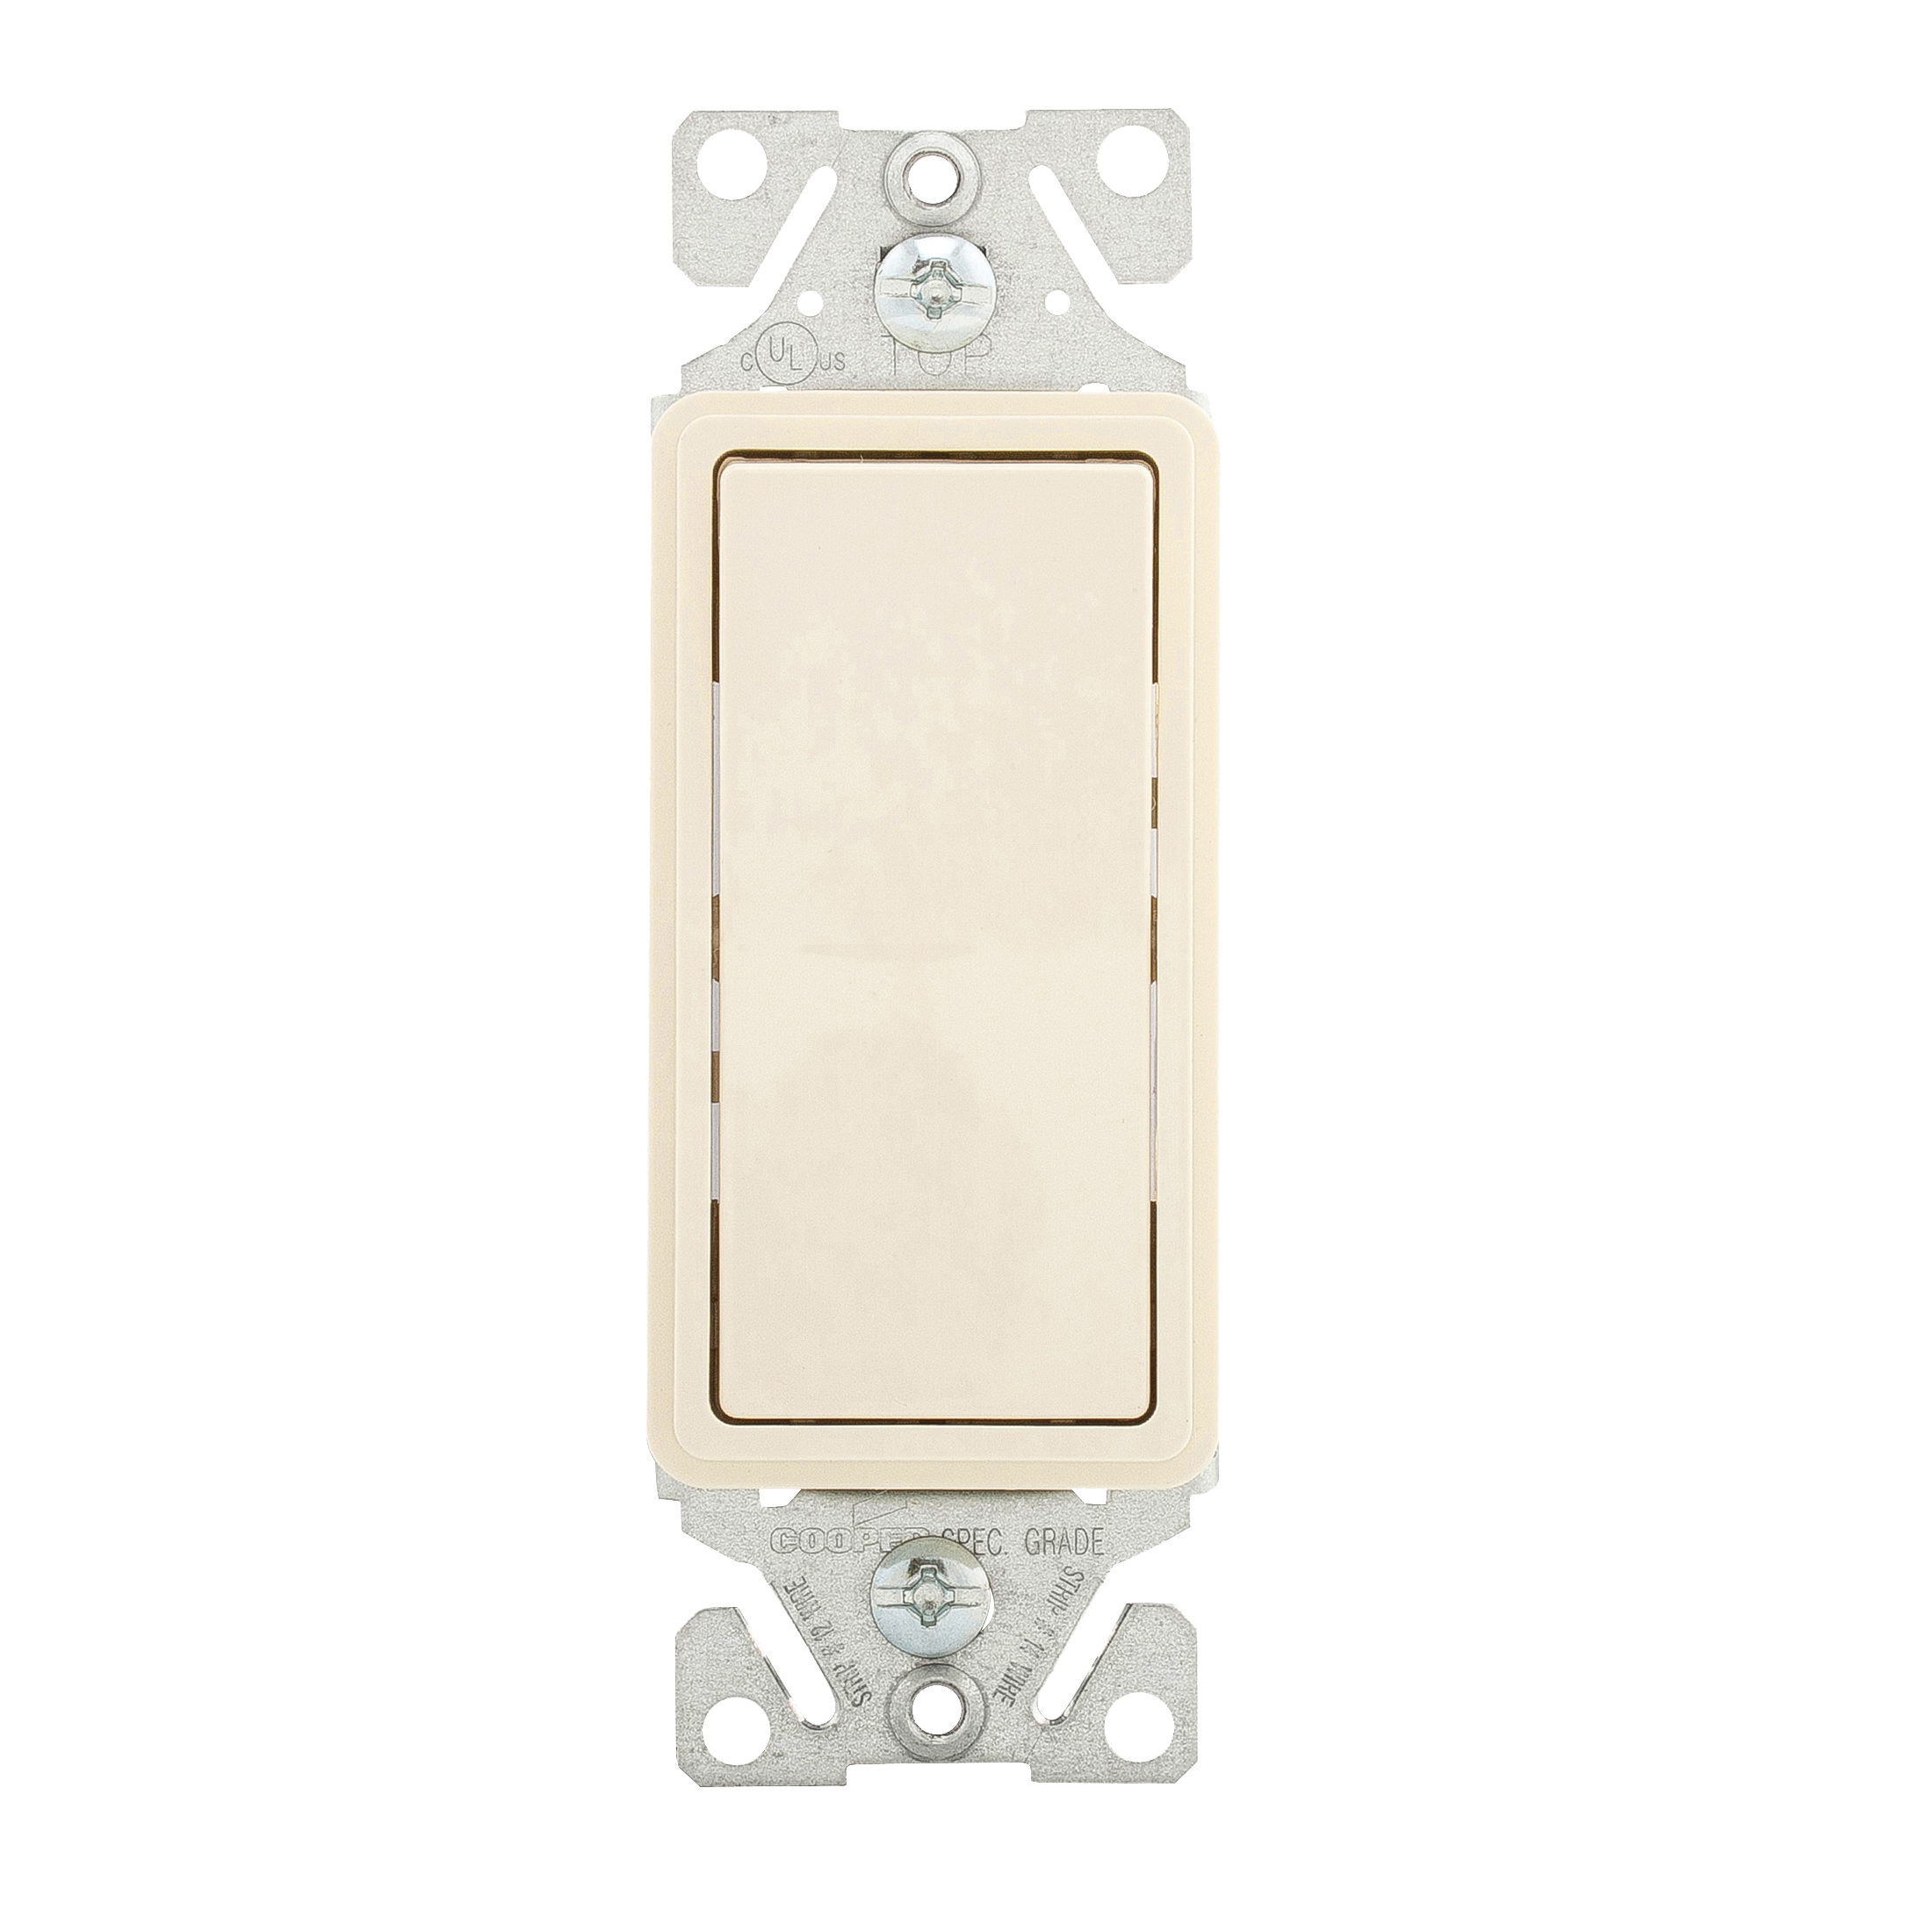 Picture of Eaton Wiring Devices 7500 Series 7501LA-BOX Rocker Switch, 15 A, 120/277 V, Single-Pole, Lead Wire Terminal